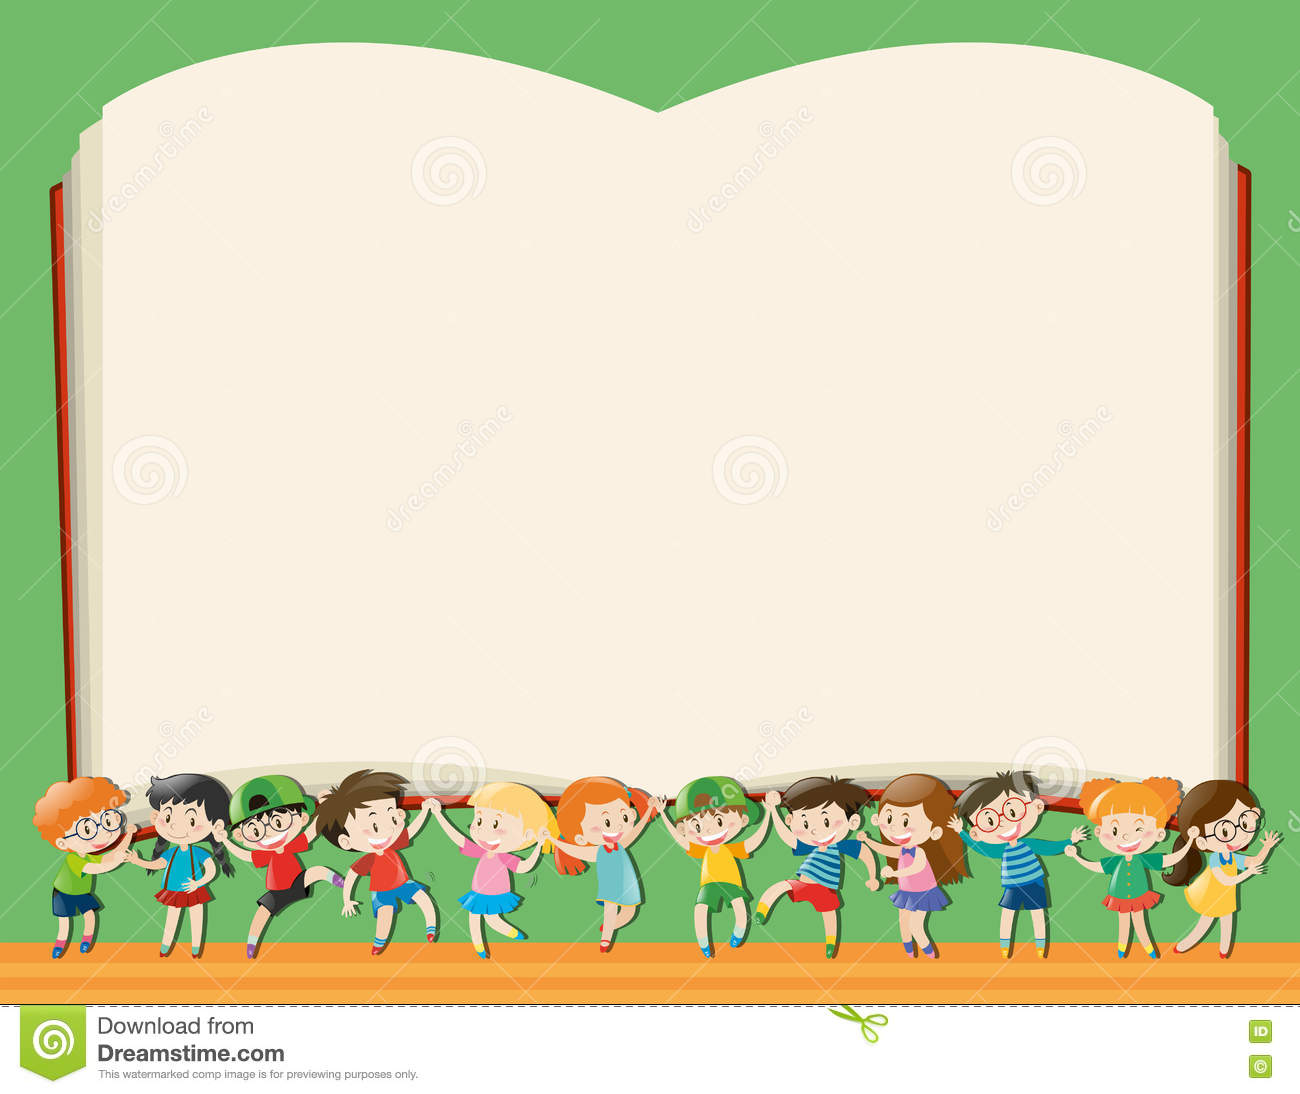 Background template with kids holding big book illustration.